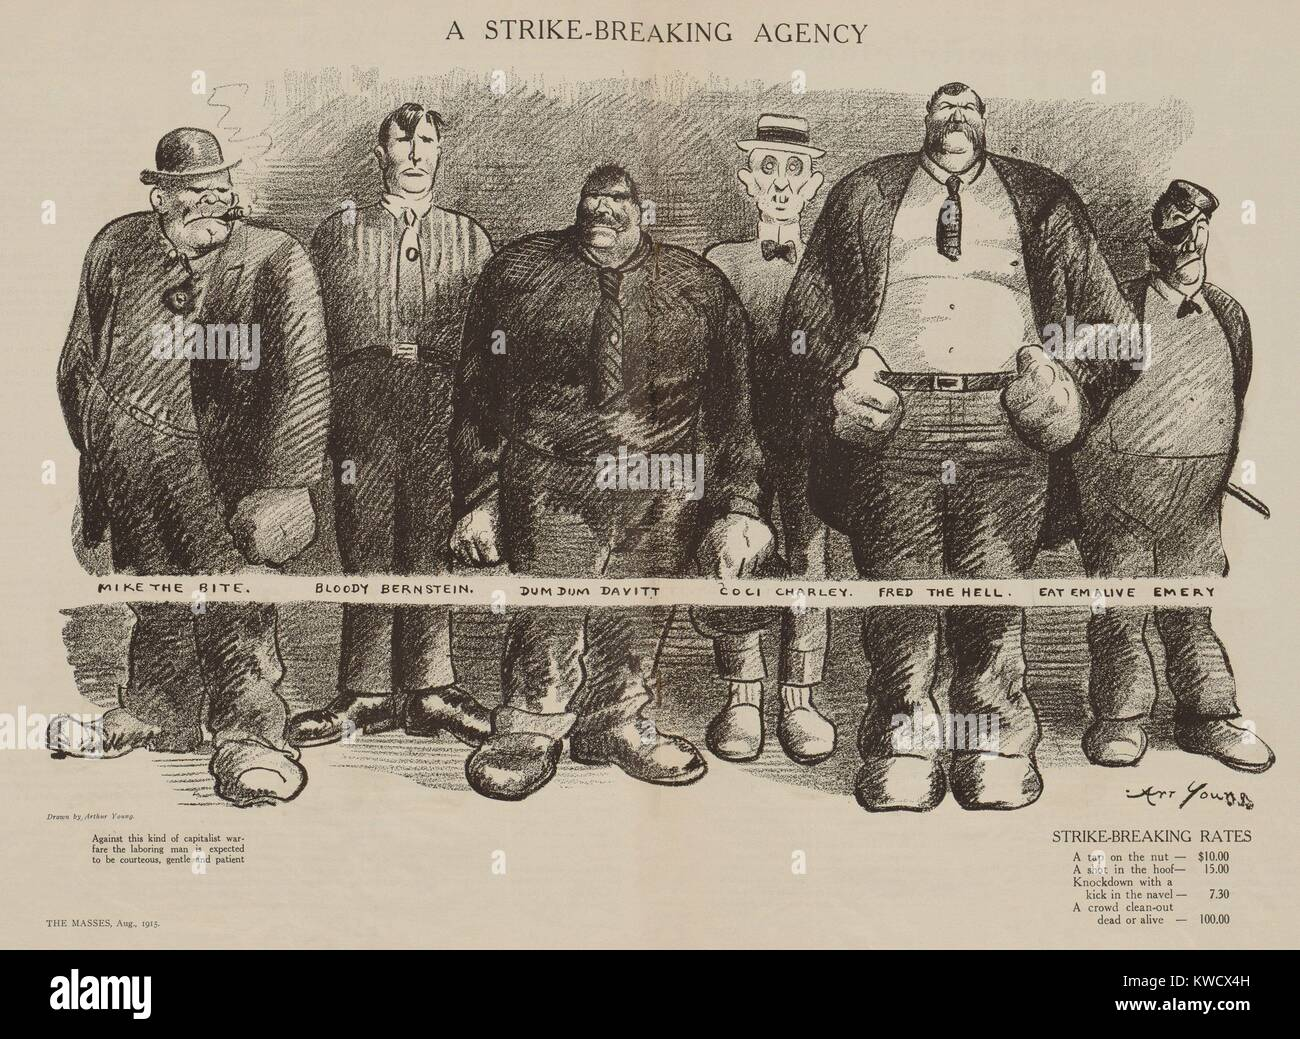 STRIKE BREAKING AGENCY, political cartoon in THE MASSES, August 1915. Arthur Young drawing depicts a group of thugs, - Stock Image